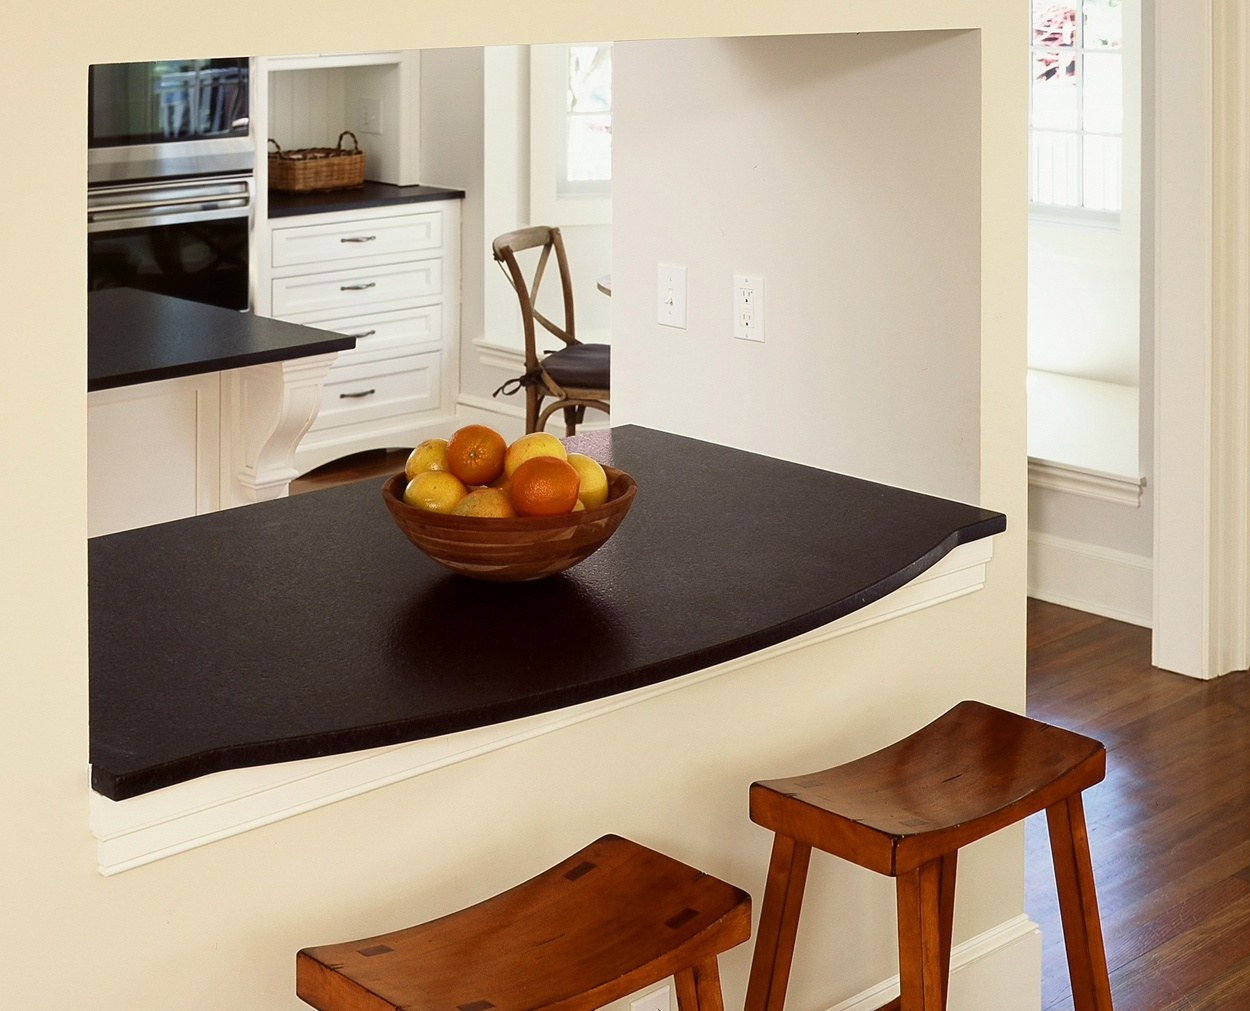 Honed absolute black granite counter passthrough